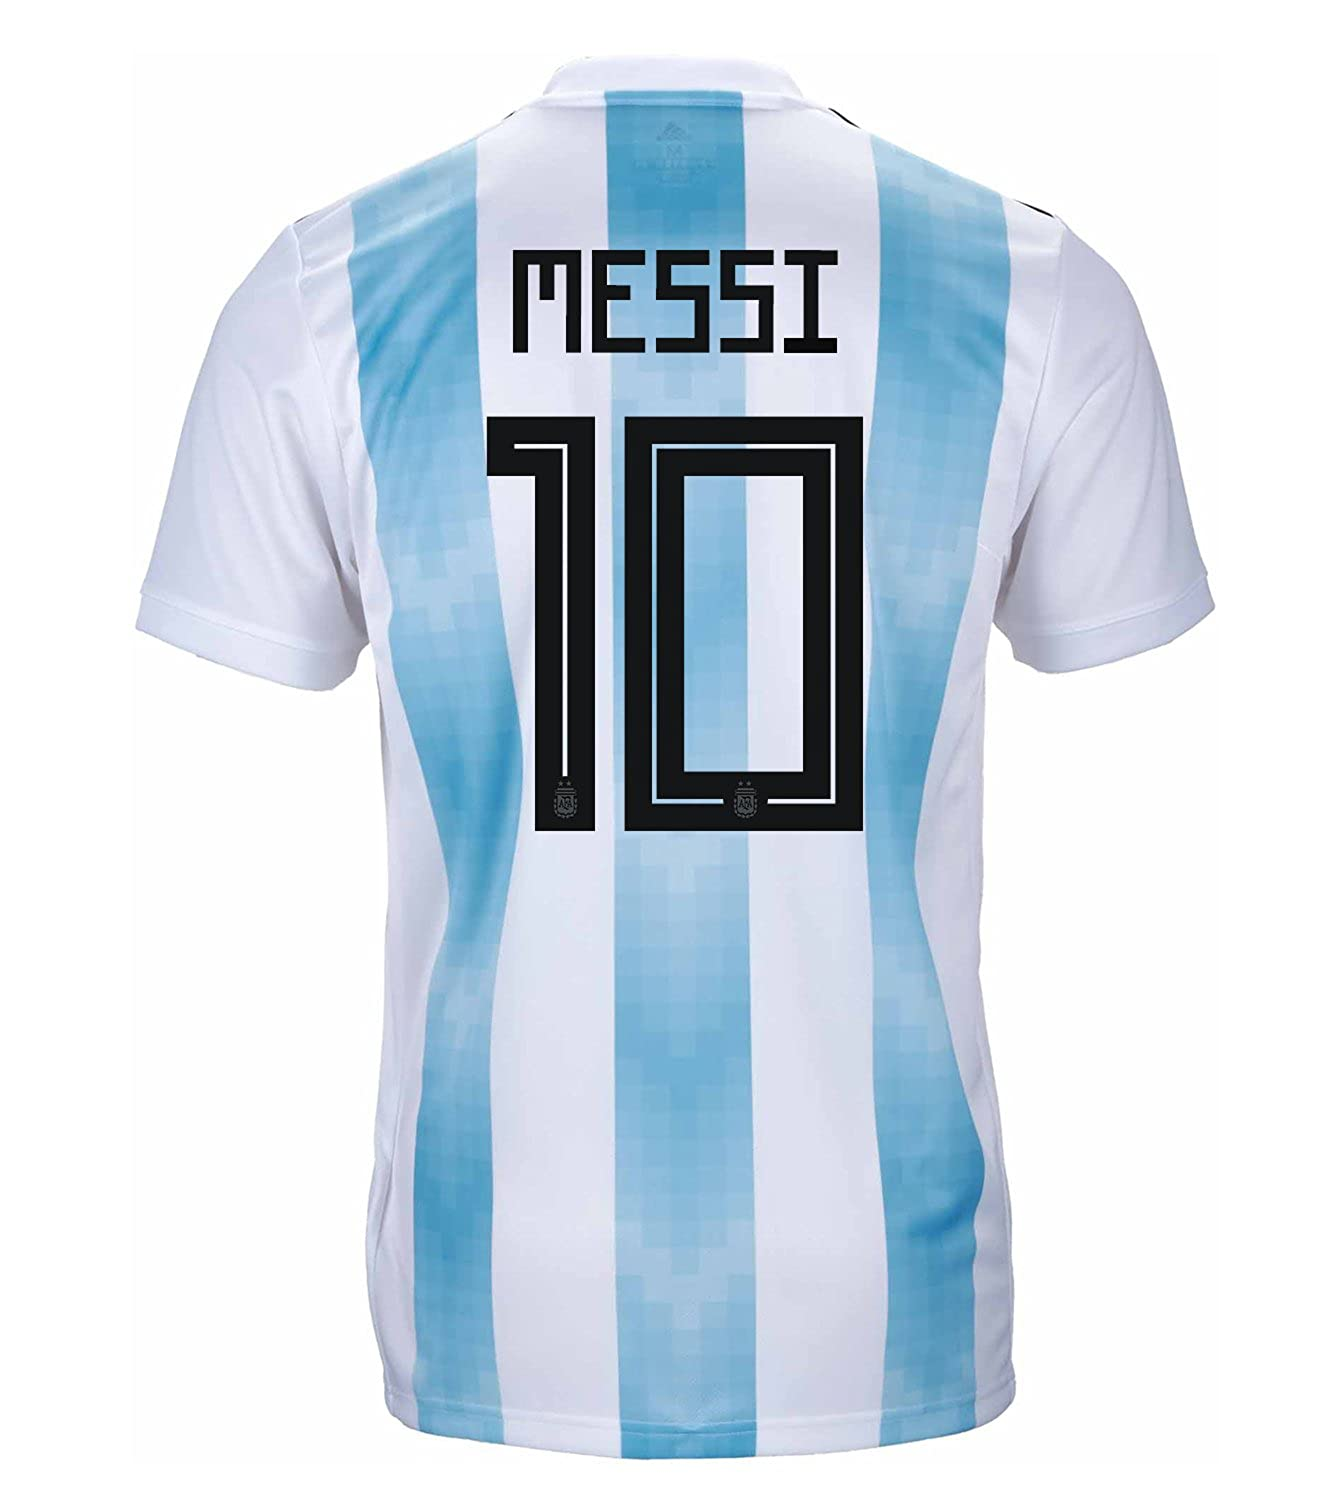 adidas Men's MESSI #10 Argentina Home Soccer Stadium Jersey World Cup Russia 2018/サッカーユニフォーム アルゼンチン ホーム用 メッシ B07DM5Y4Y8US Small